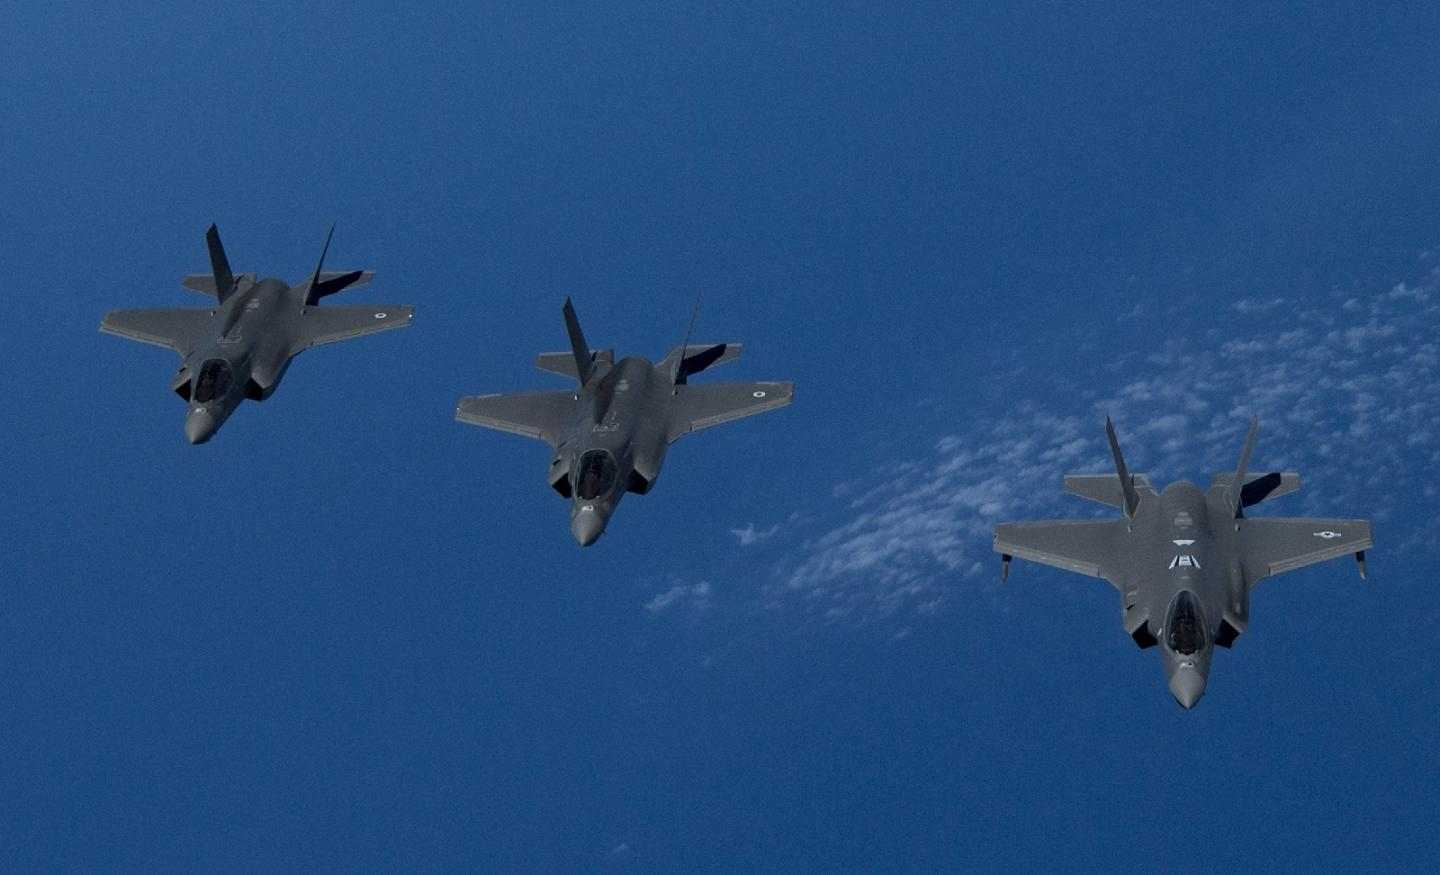 Wargames: This Amazing Picture Shows F-35s Doing Something Only F-35s Can Do